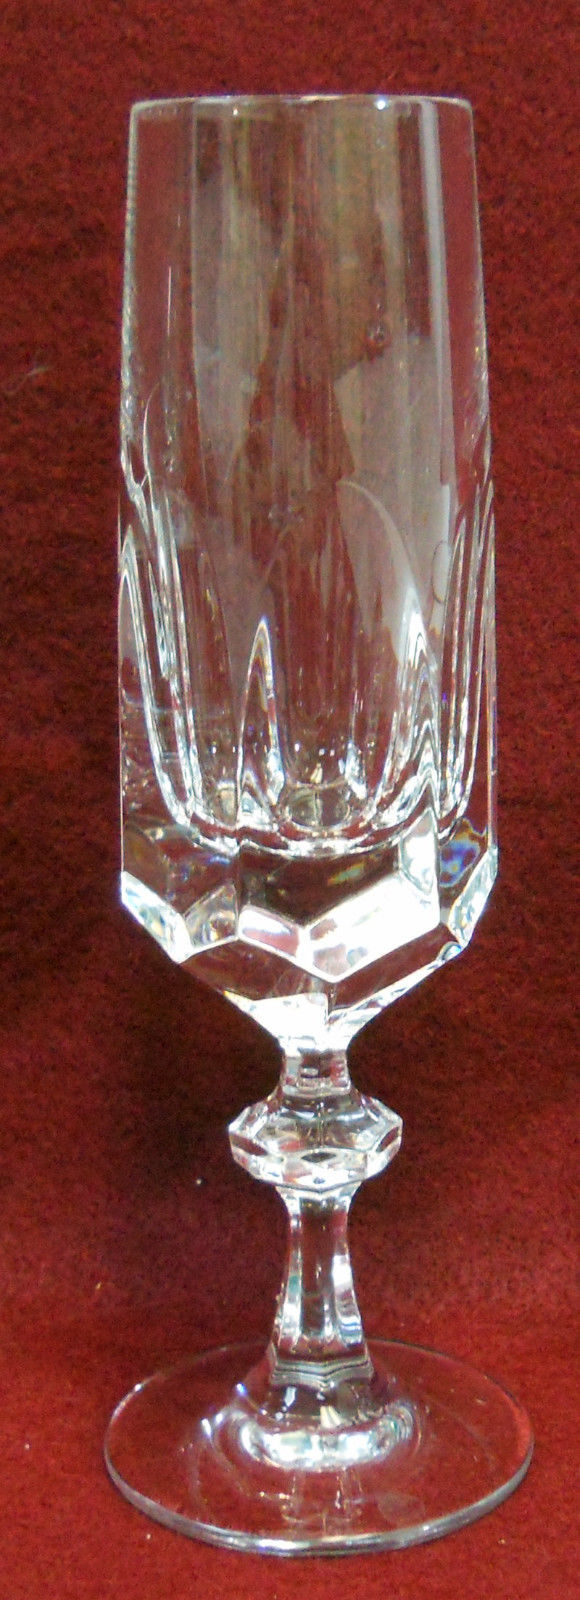 GORHAM crystal ALEXANDRA Fluted Champagne Glass or Goblet - 7-1/2